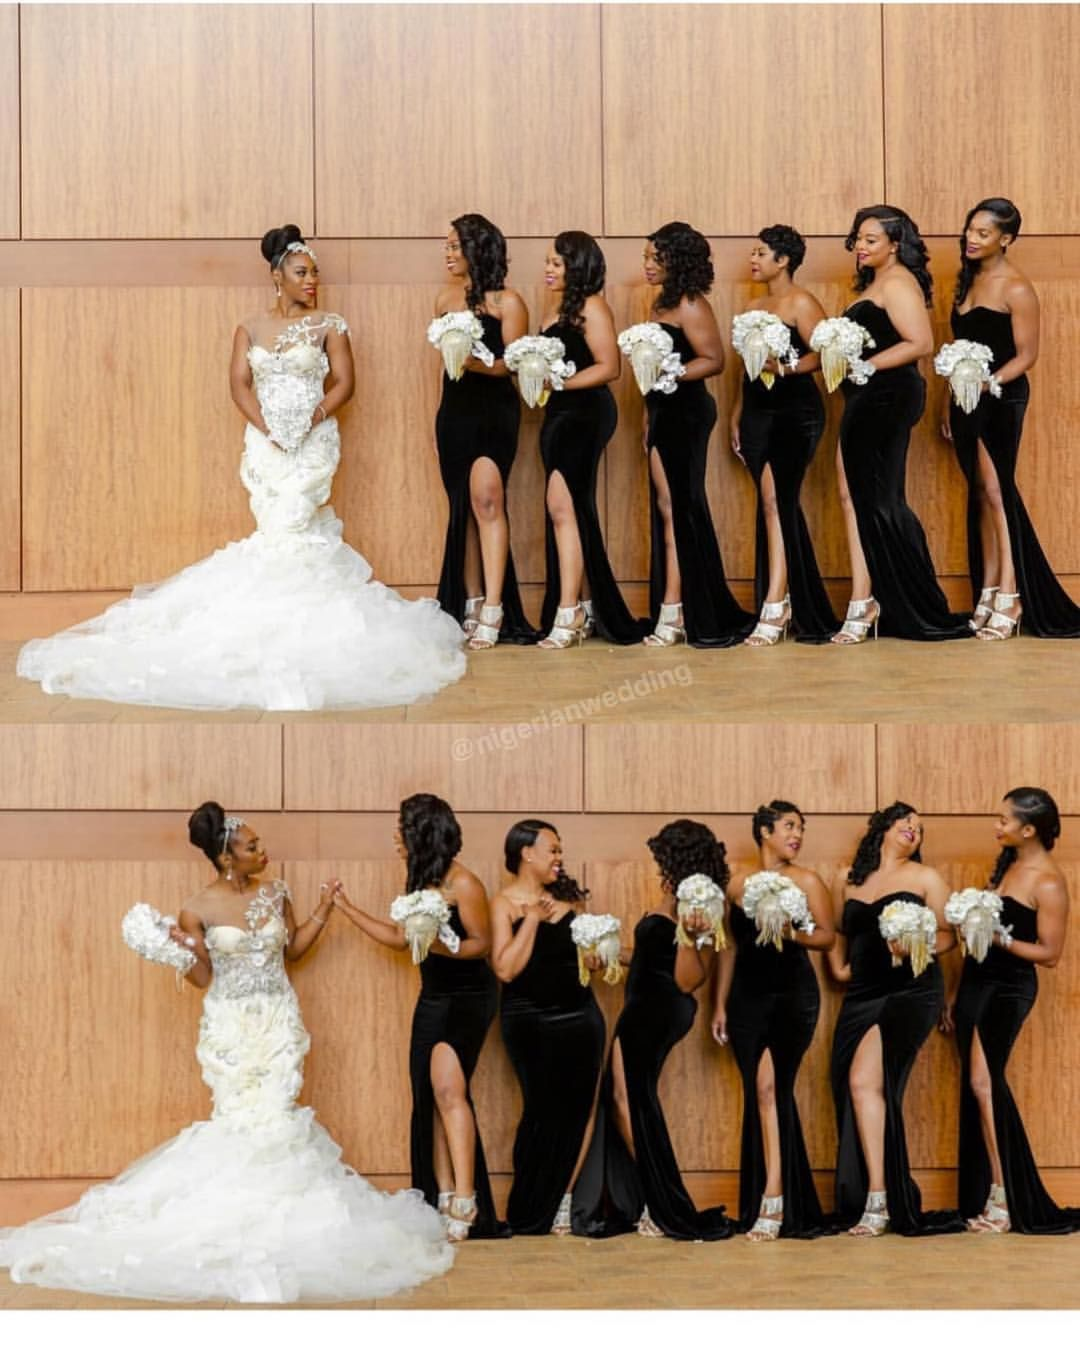 Mslisag2017 For The Love Of Black Slits More Nwbms Nigerianwedding Wedding Picture Poses Wedding Poses Wedding Bridesmaids